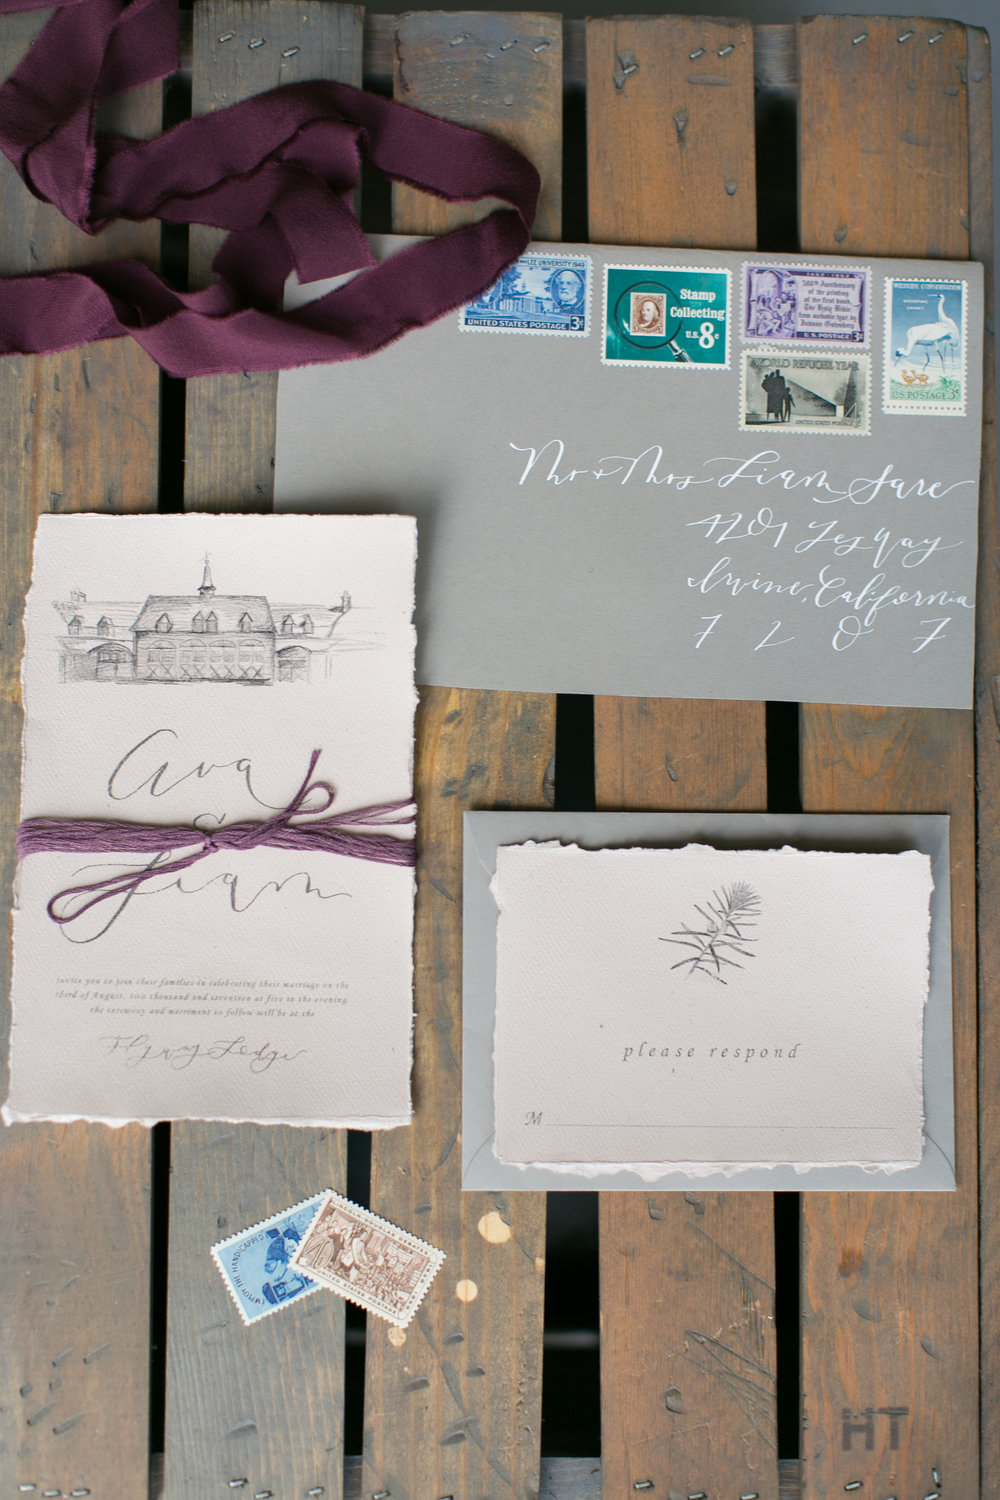 The Invitation Suite... - Jordan of She Design Co. designed these GORGEOUS invitations. I secretly was hoping she would want to do a hand-drawing of the venue for the invitation but wanted her to have creative license so we sent her the mood board and pictures of the venue and told her to be creative and do whatever she wanted for them.  We were thrilled when she told us she would be doing a hand-drawing of the beautiful Flyway Lodge on the invitation and even more thrilled when we receive the final product in the mail!   Could they be any prettier?  She also did all hand-lettered items that you see in this shoot. I'm so proud of how this former EBJ bride turned industry peer is killing it with her business!